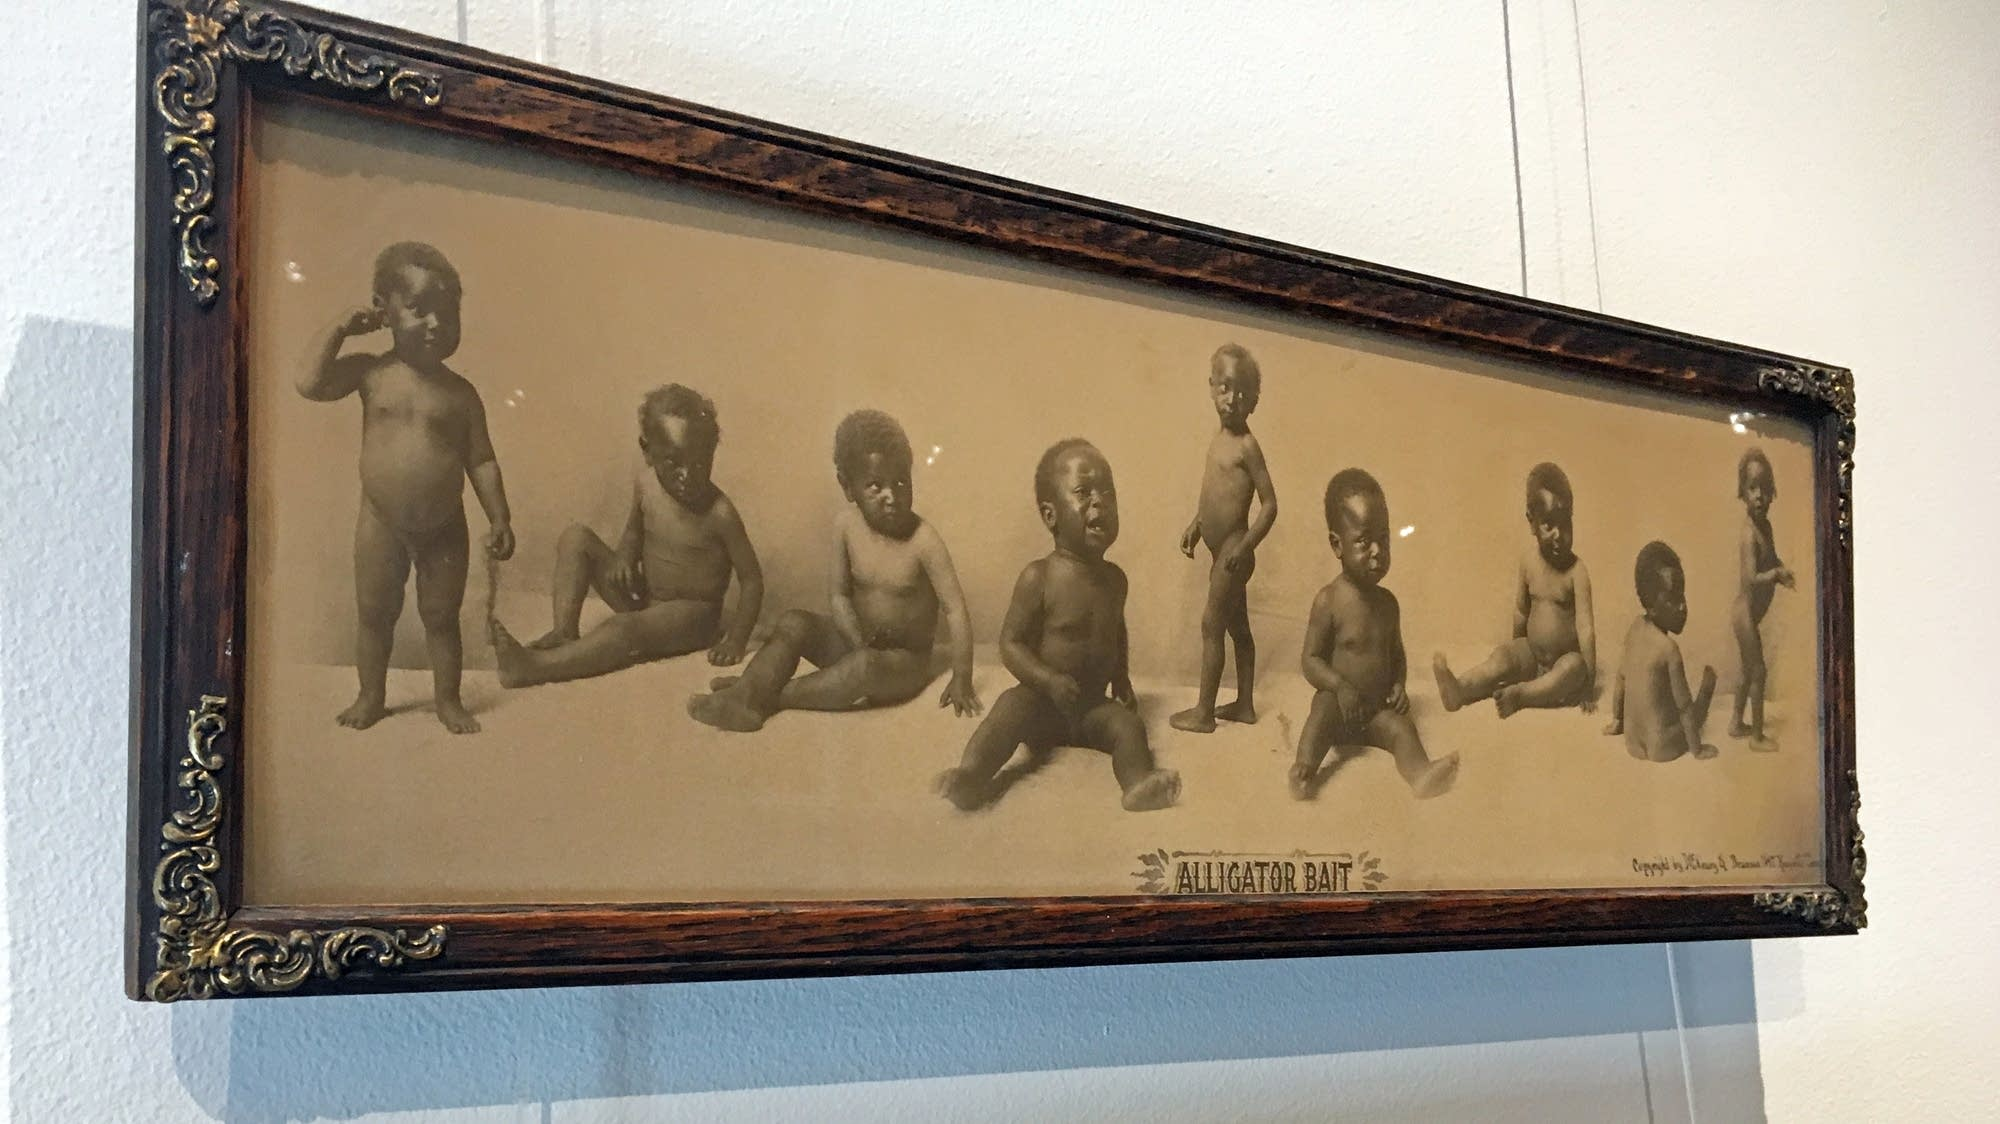 One piece from the Testify exhibit portrays babies as 'alligator bait.'